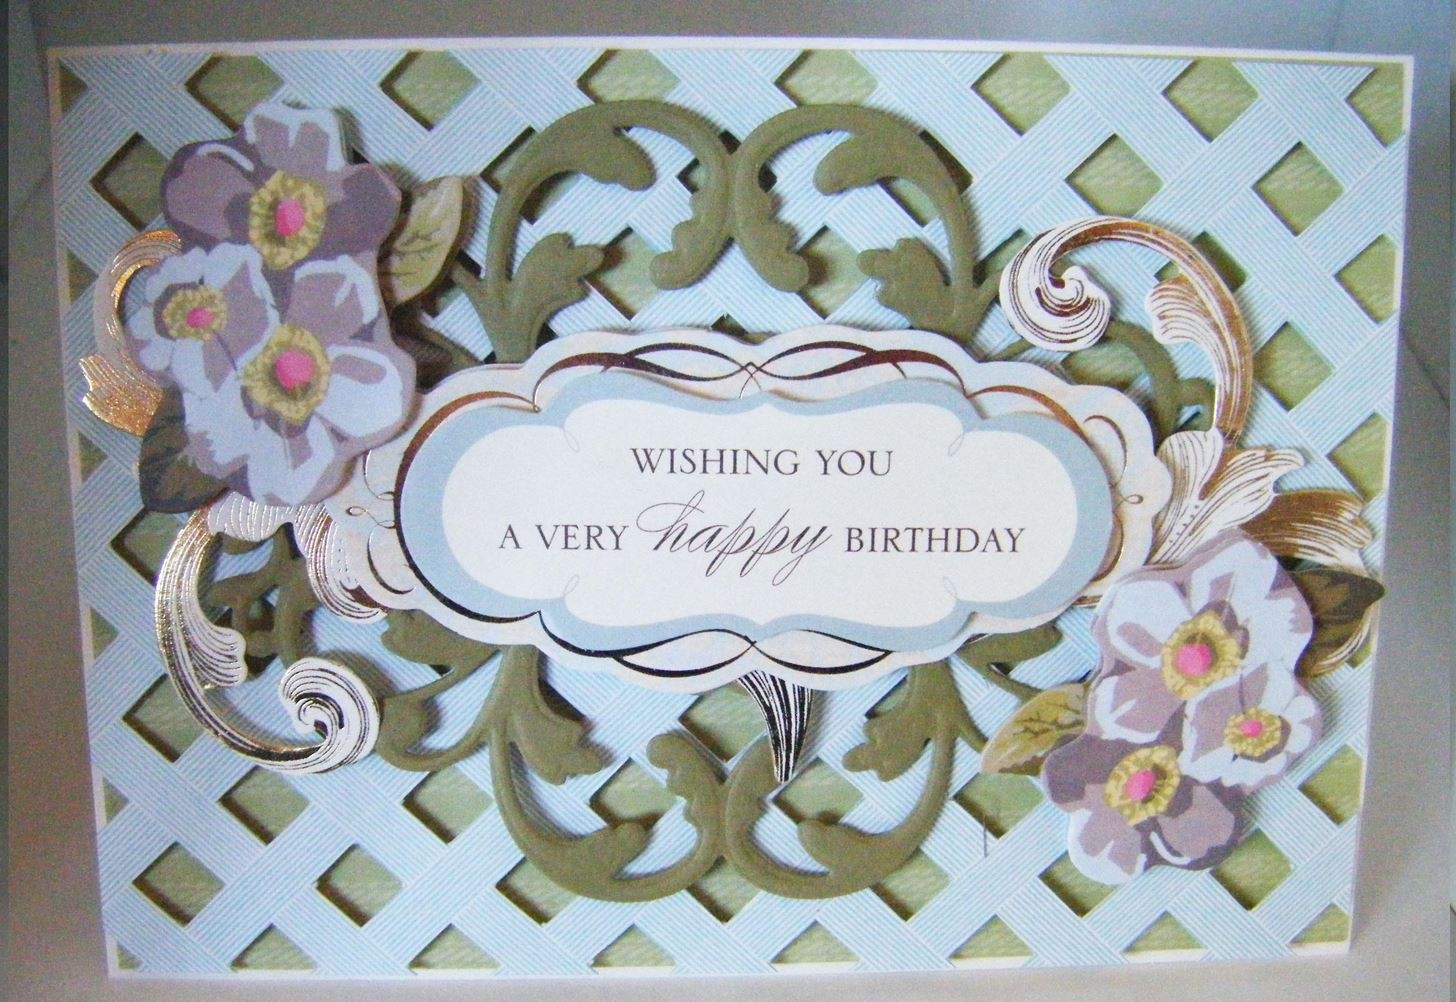 How to Make a Lattice Floral Birthday Card